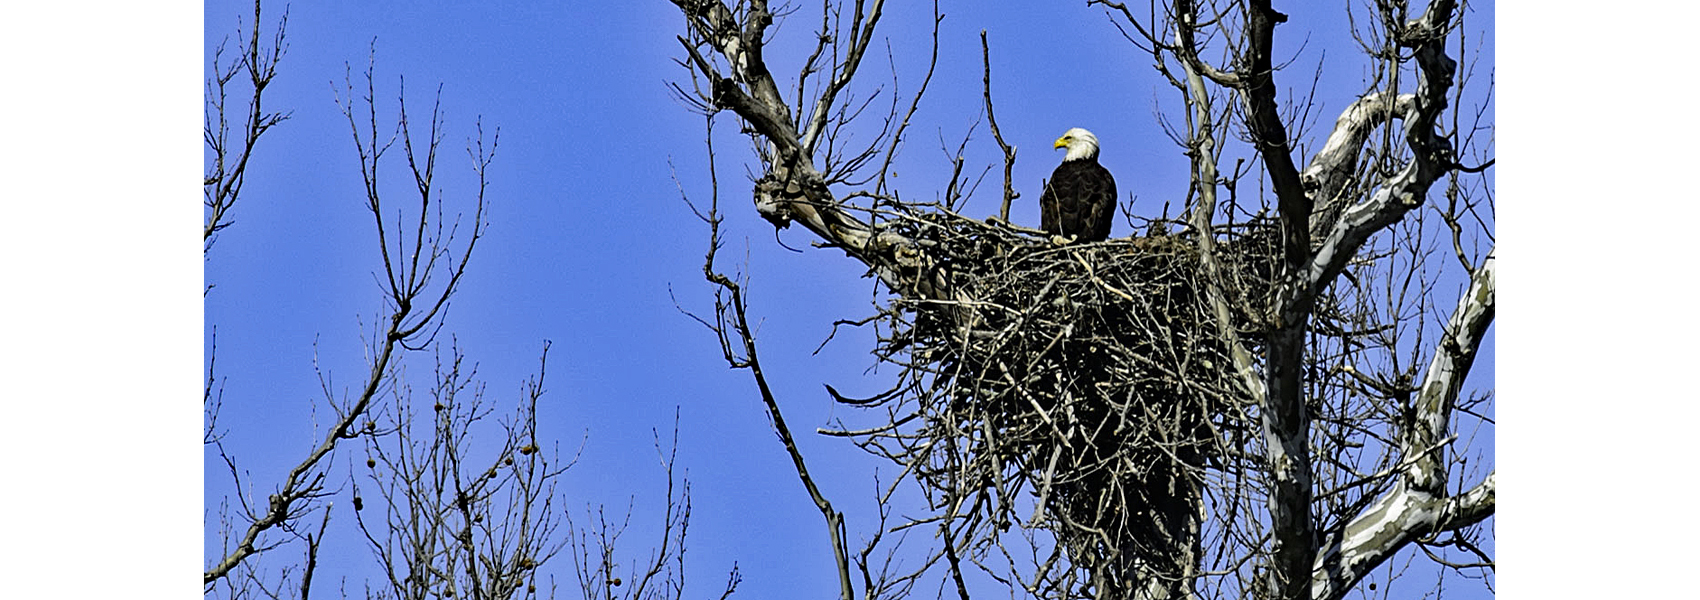 Bald eagle sitting on a nest